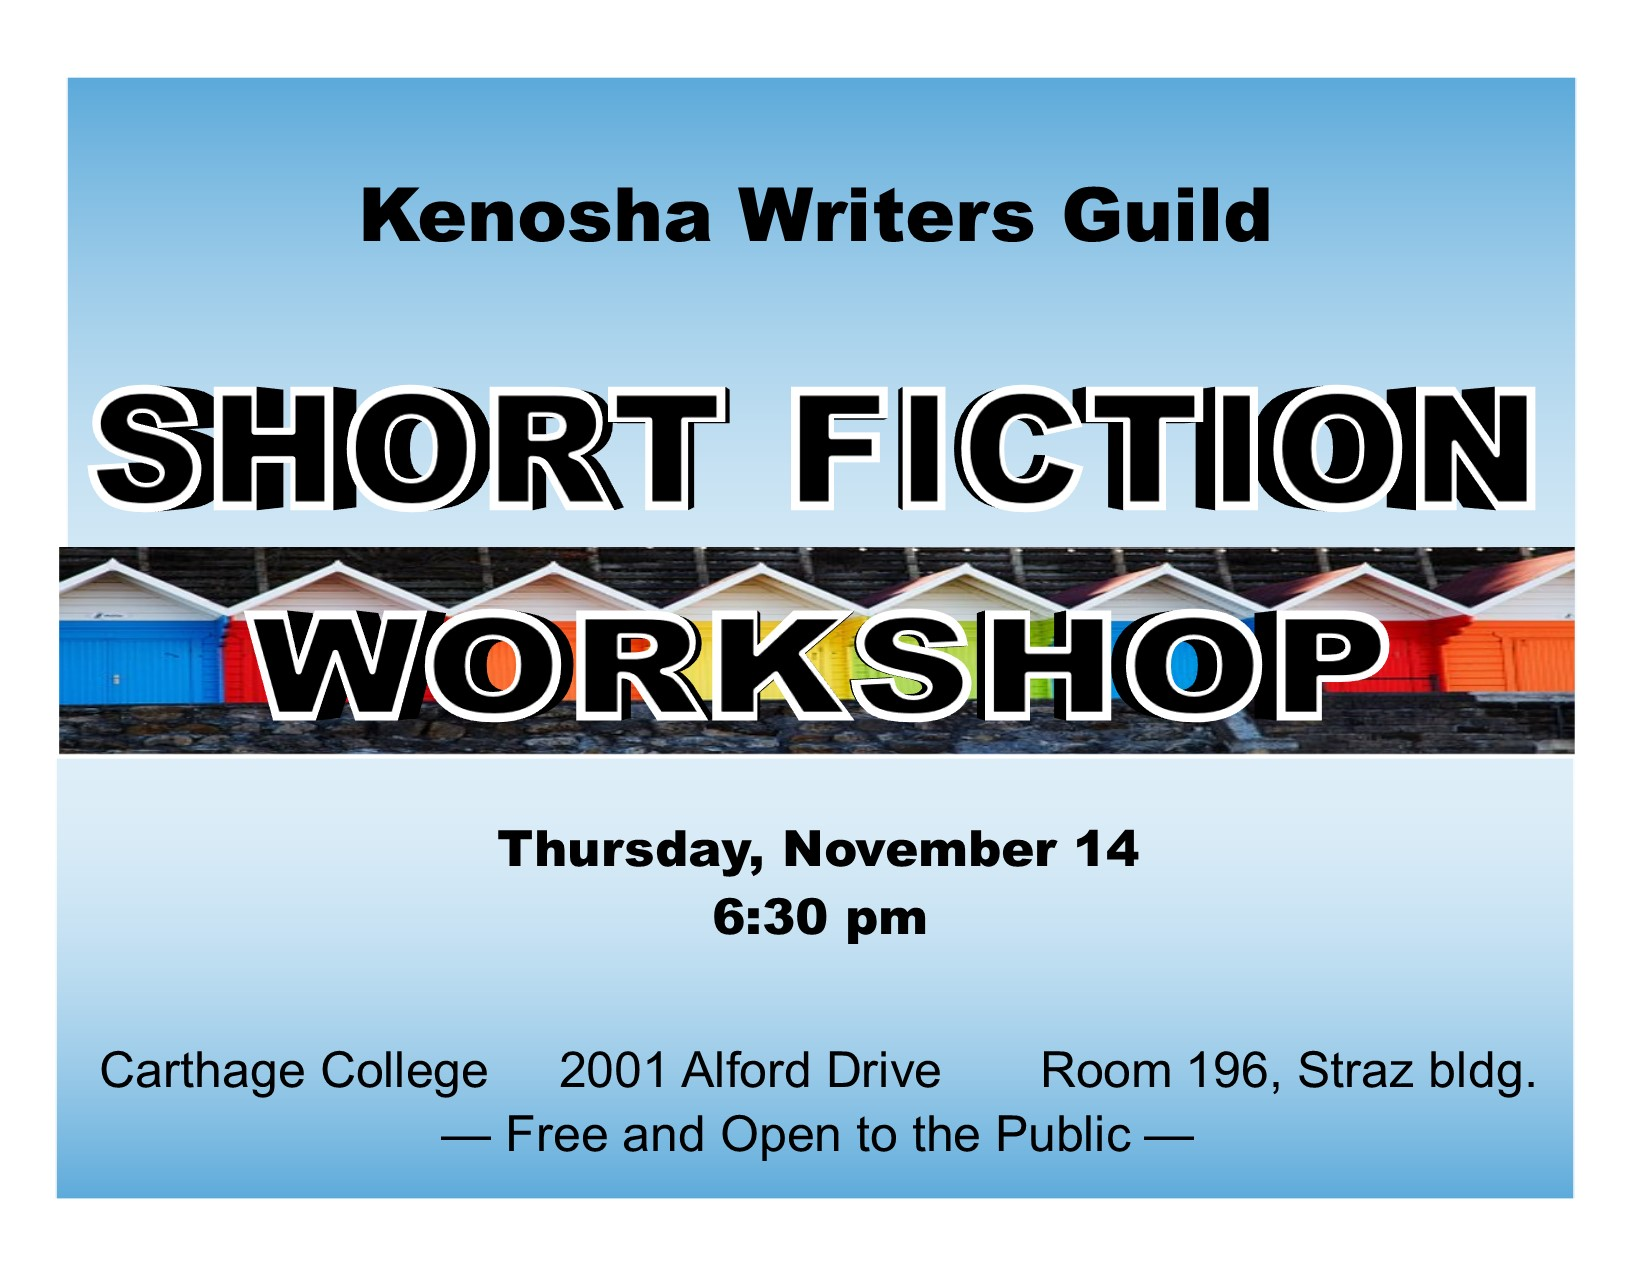 SHORT FICTION WORKSHOP